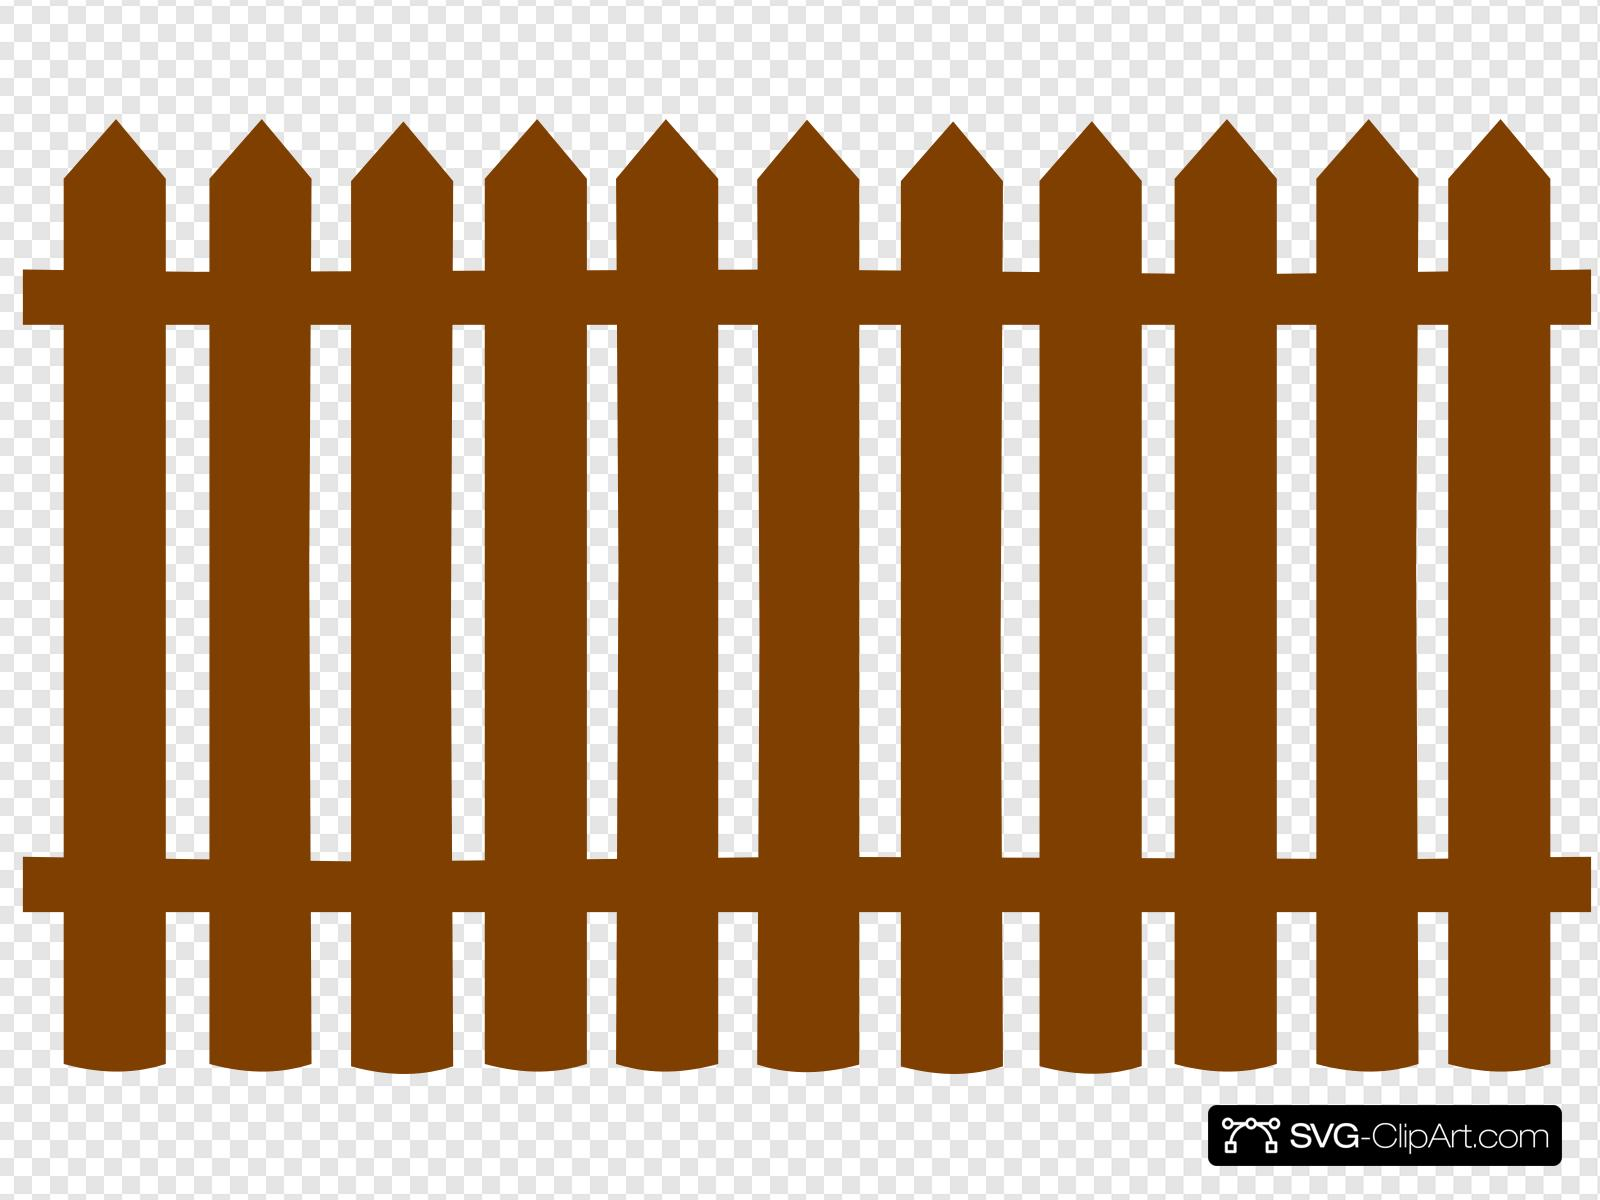 Brown Fences Clip art, Icon and SVG.